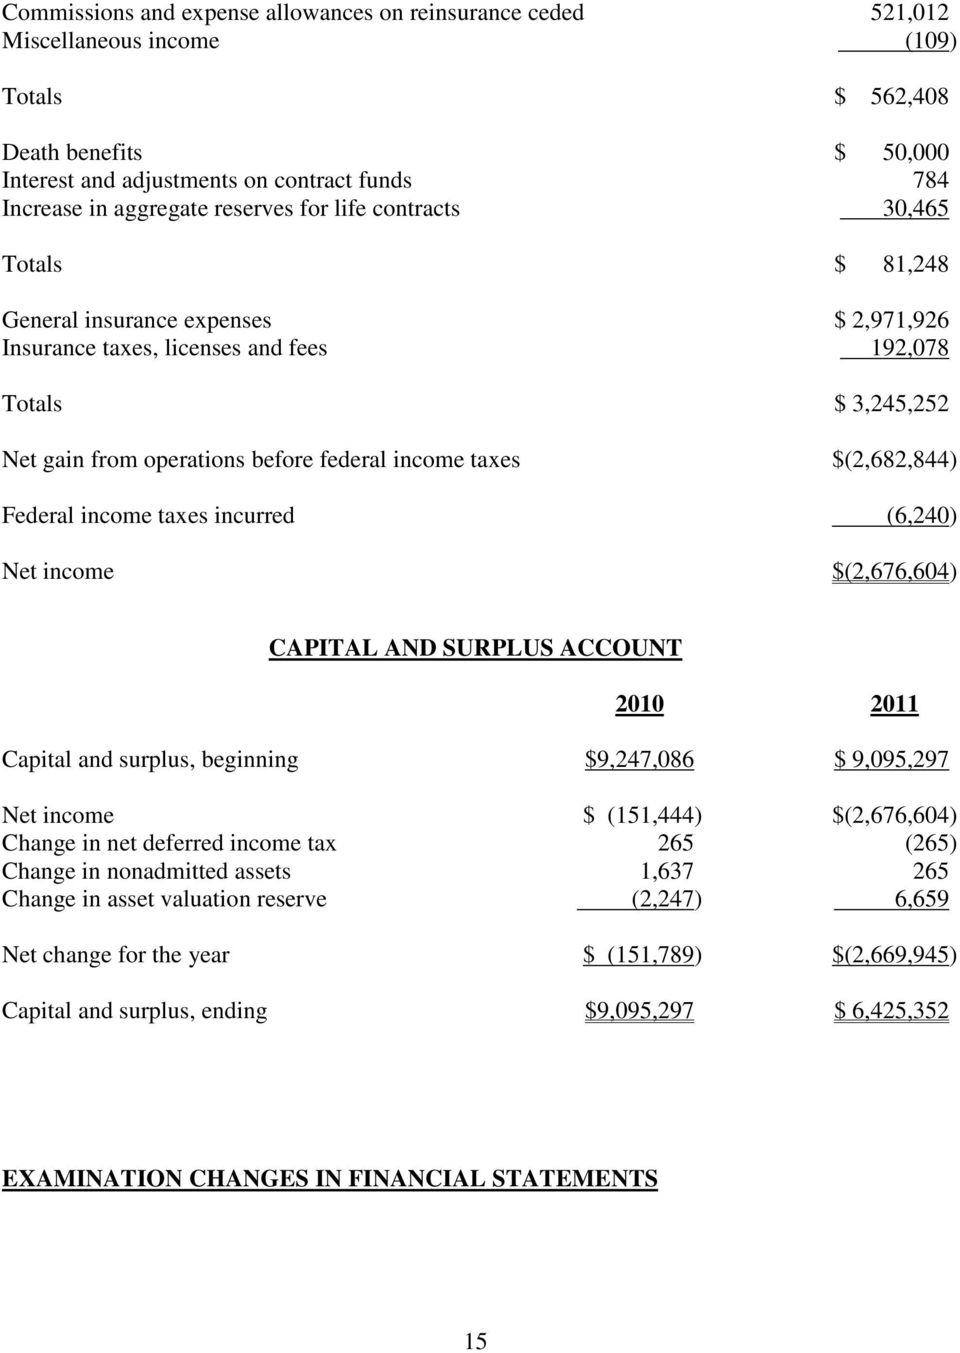 federal income taxes $(2,682,844) Federal income taxes incurred (6,240) Net income $(2,676,604) CAPITAL AND SURPLUS ACCOUNT 2010 2011 Capital and surplus, beginning $9,247,086 $ 9,095,297 Net income